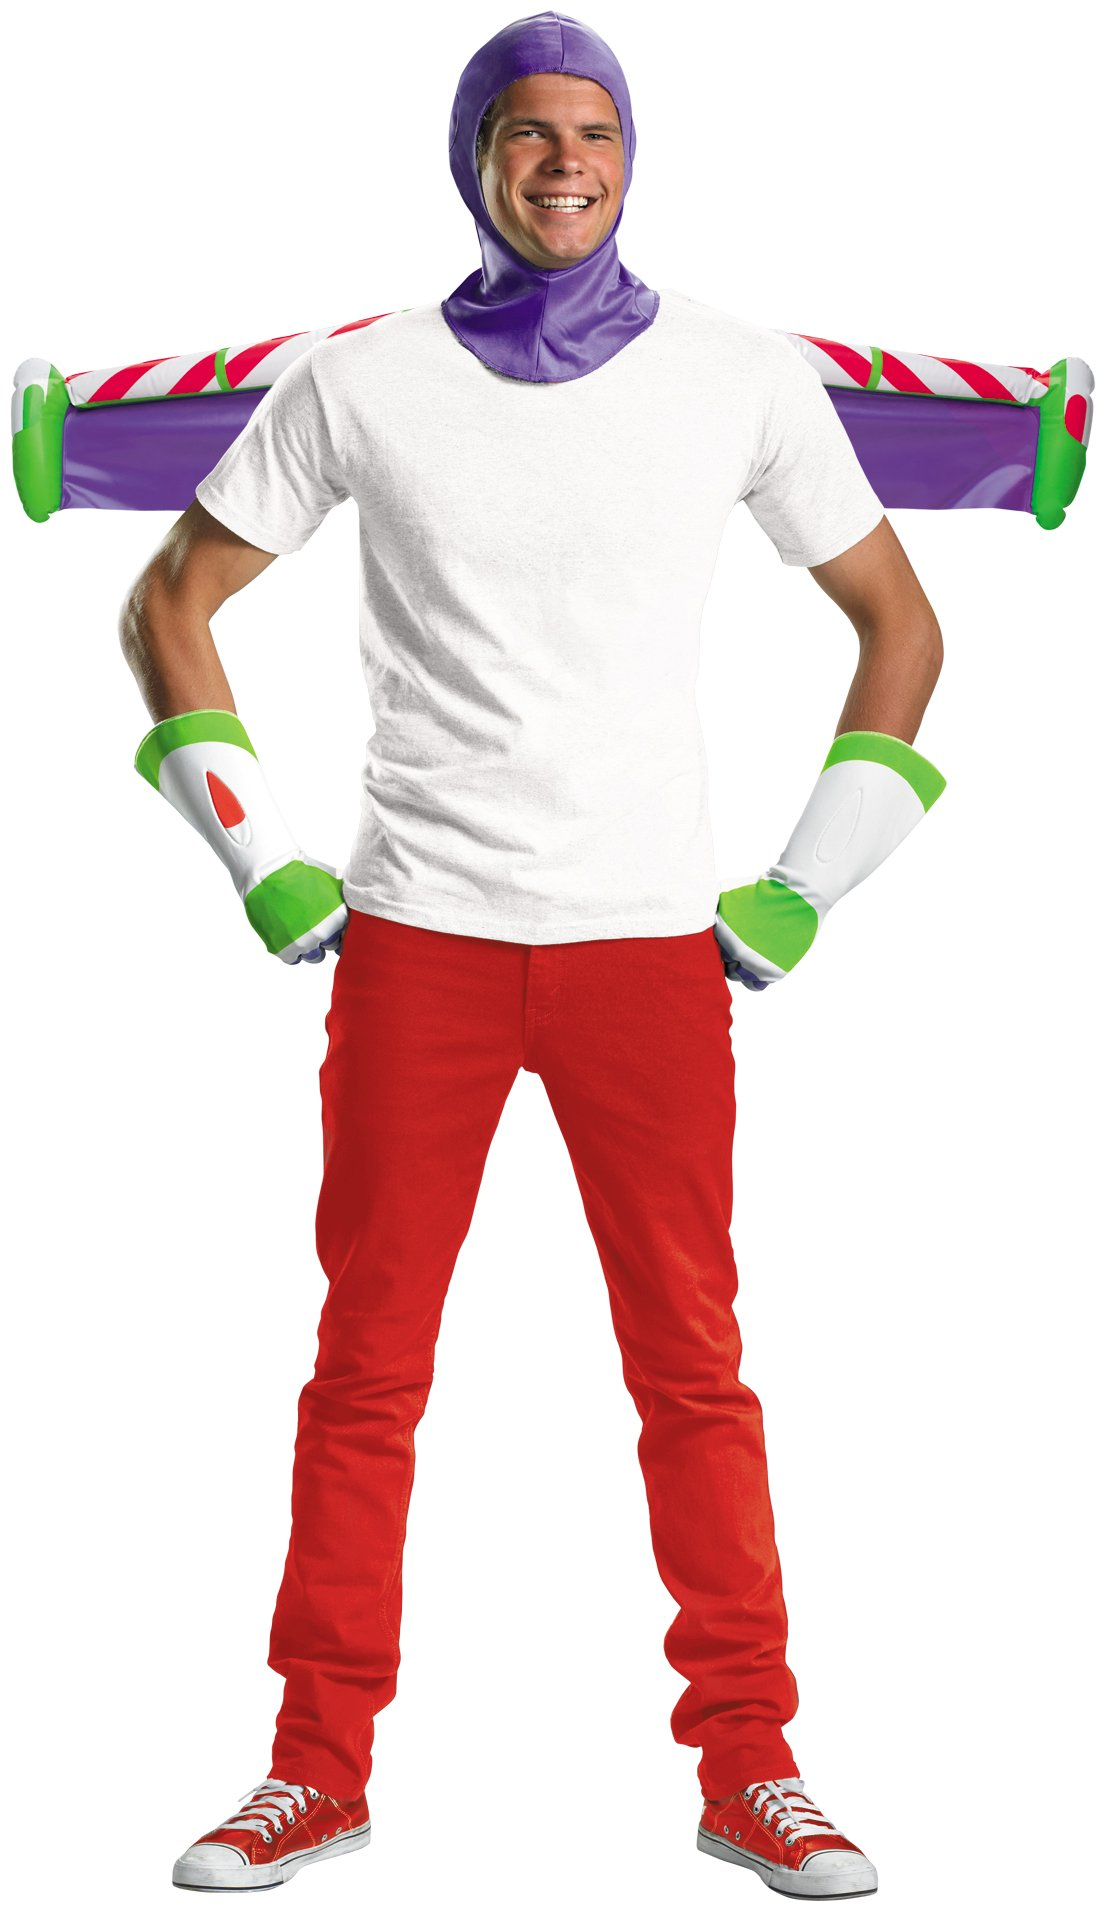 Toy Story - Buzz Lightyear Adult Costume Kit